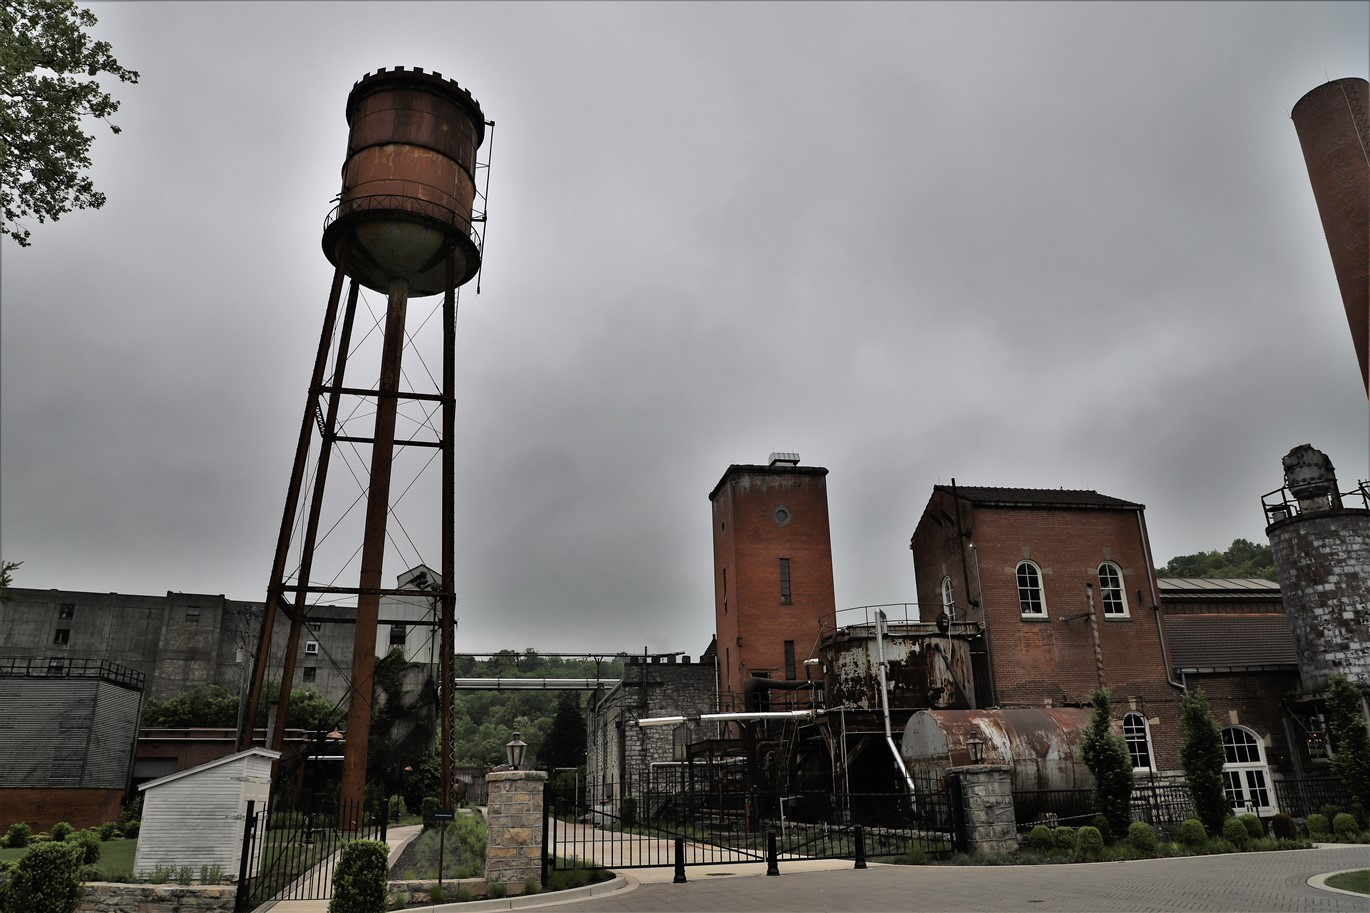 2019 05 12 146 Frankfort KY Bourbon Distillaries.jpg